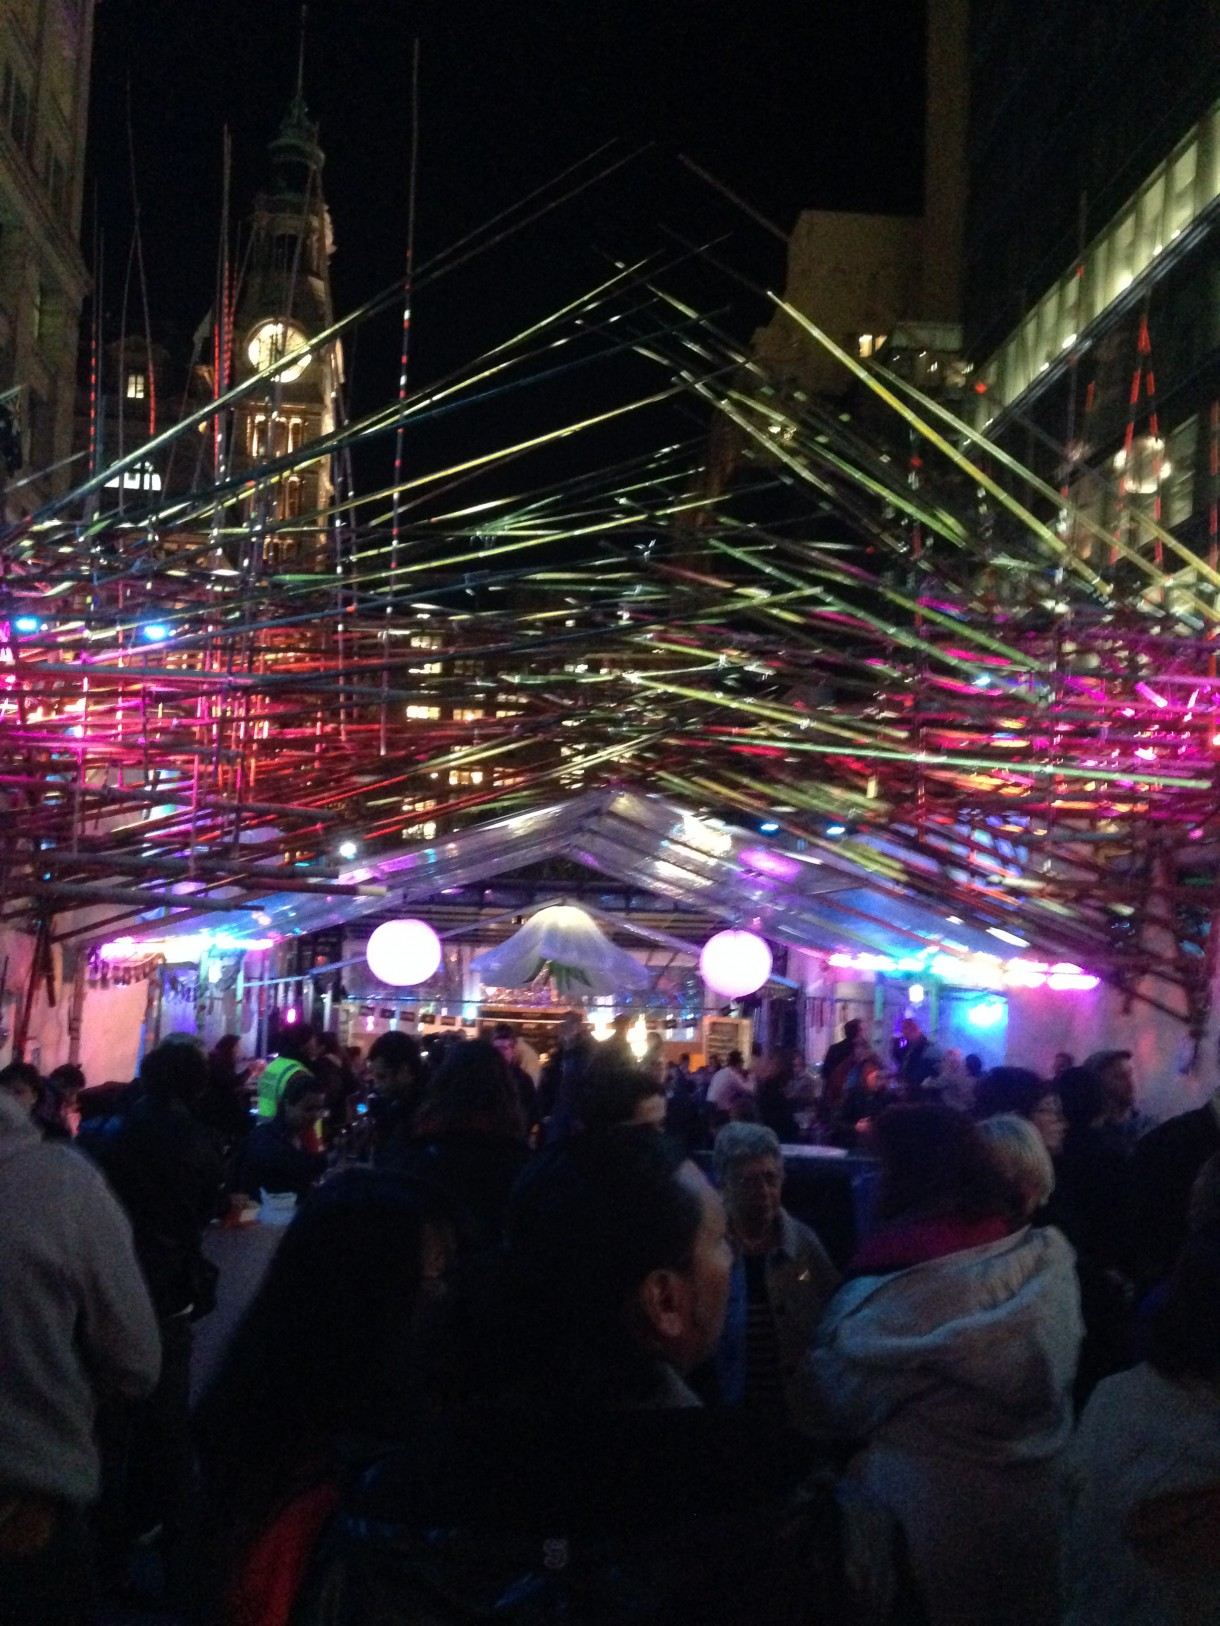 The 'Transcendence' stage at Vivid 2015